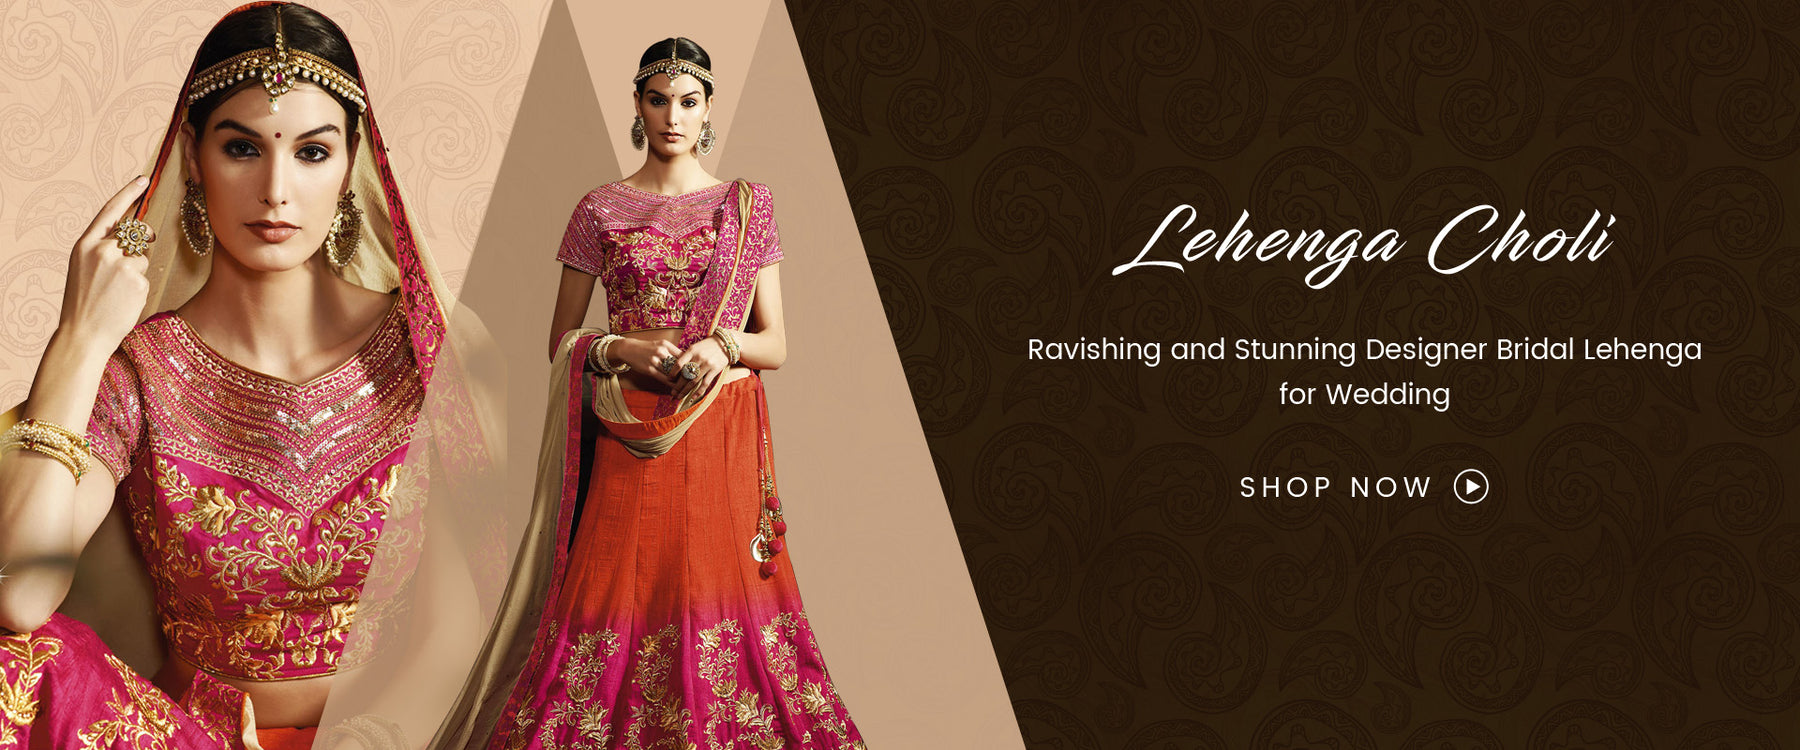 Lehenga Choli Online Shopping: Buy Designer Lehenga online at best price on Variation. Choose from wide range of Bridal Lehengas and Indian Wedding Lehenga Choli for reception. Shipping worldwide including India, USA, UK and Canada.